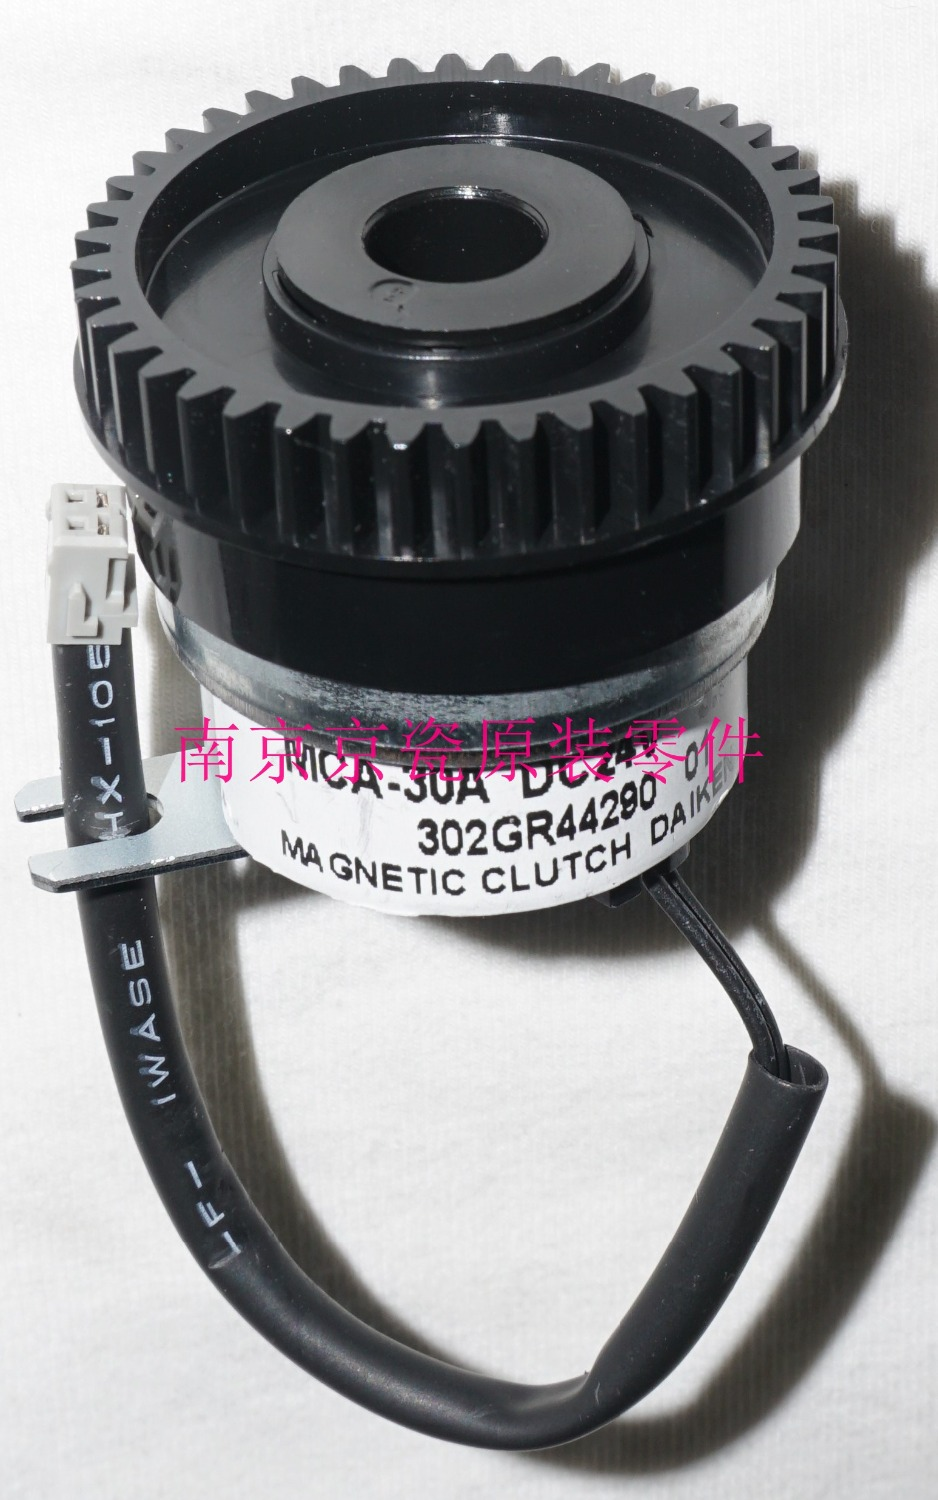 New Original Kyocera 302GR44290 CLUTCH FEED/BYPASS/VERTICAL for:TA520i 420i new original kyocera 2fb27110 motor feed for km 8030 6030 ta820 620